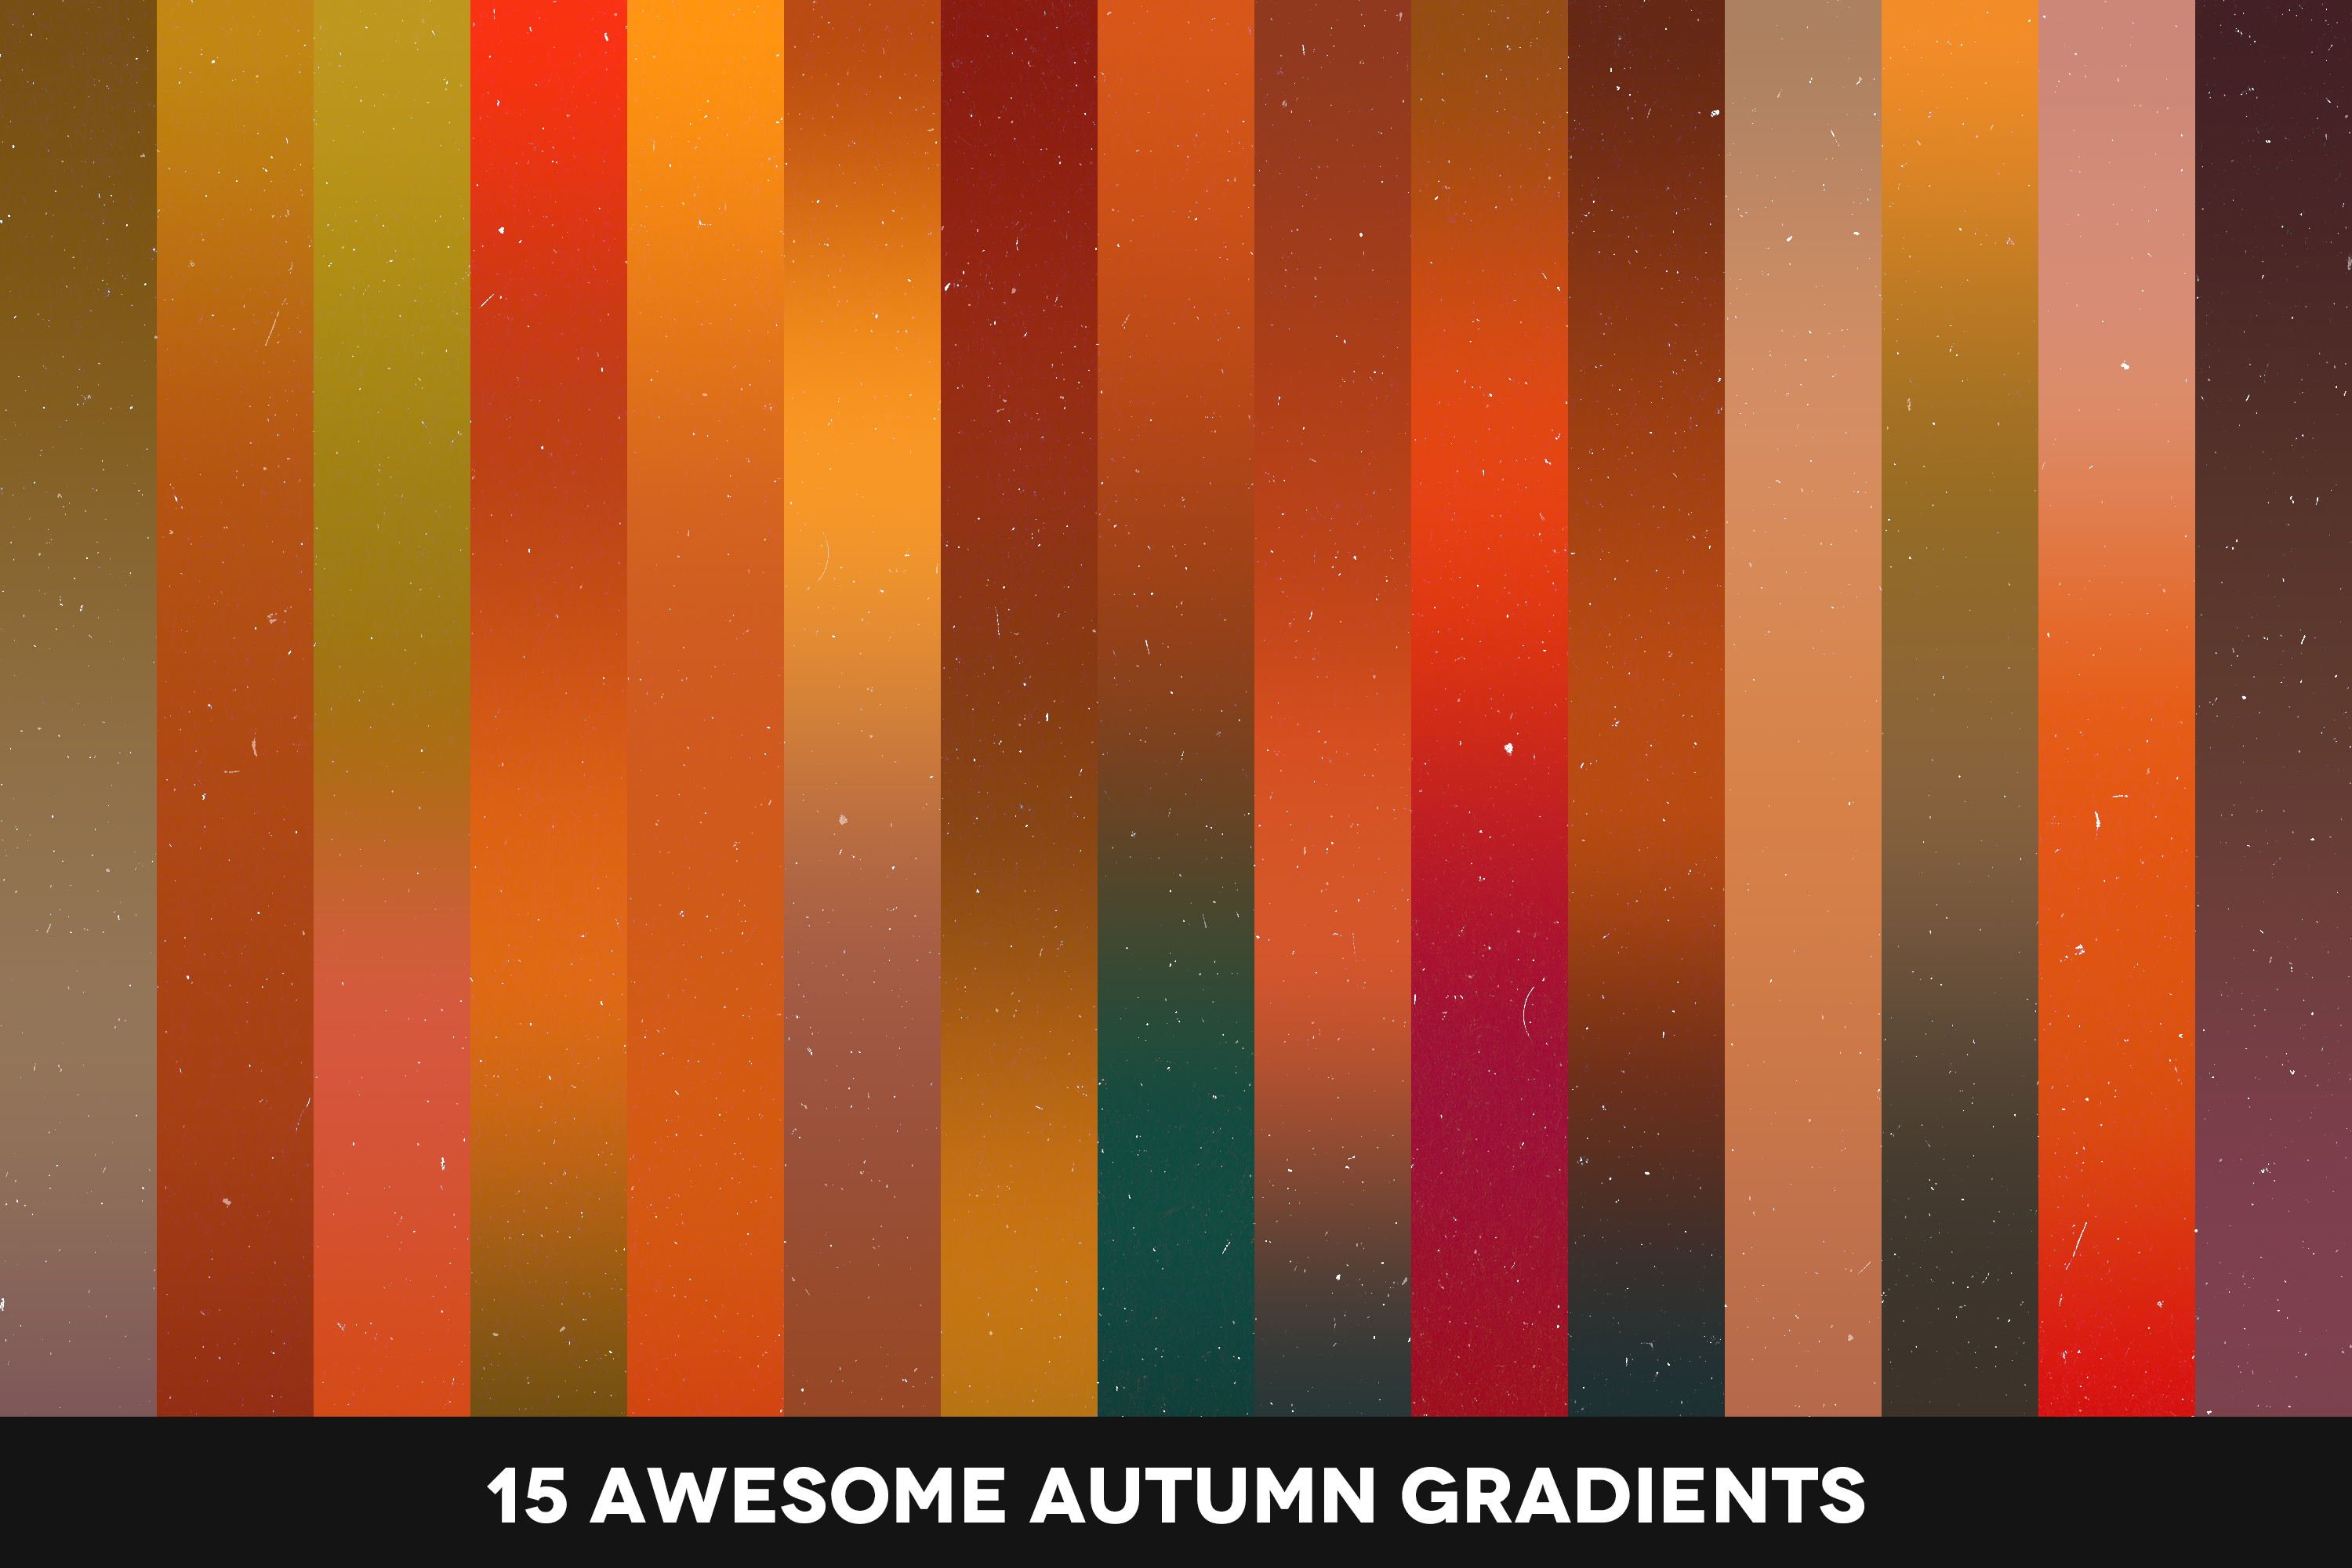 Autumn Forest - Atmospheric Photoshop Gradients Pack example image 2